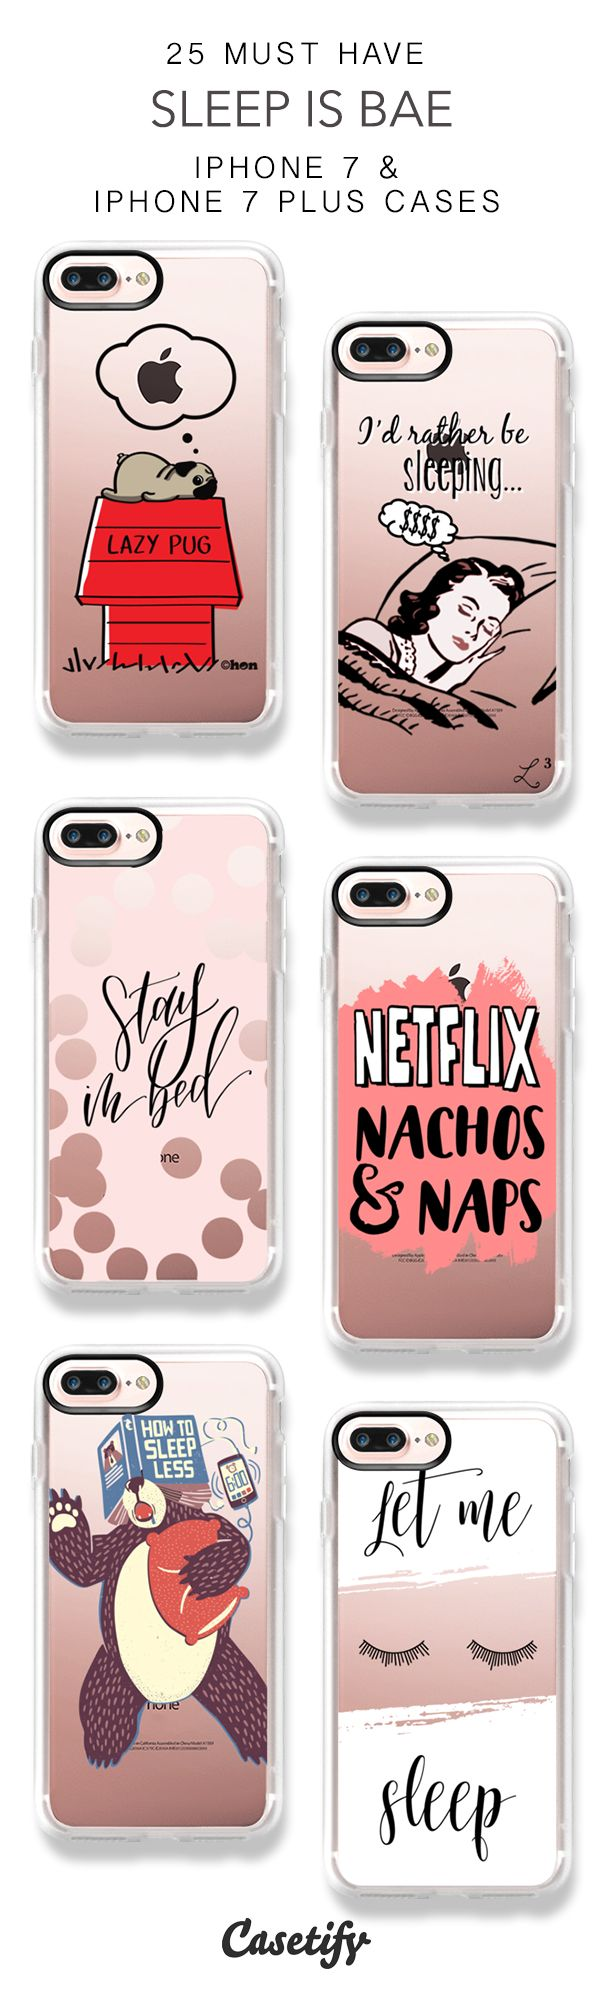 25 Must Have Sleep Is Bae Protective iPhone 7 Cases and iPhone 7 Plus Cases. More Nap Quote iPhone case here > https://www.casetify.com/collections/top_100_designs#/?vc=M165YQkIkC